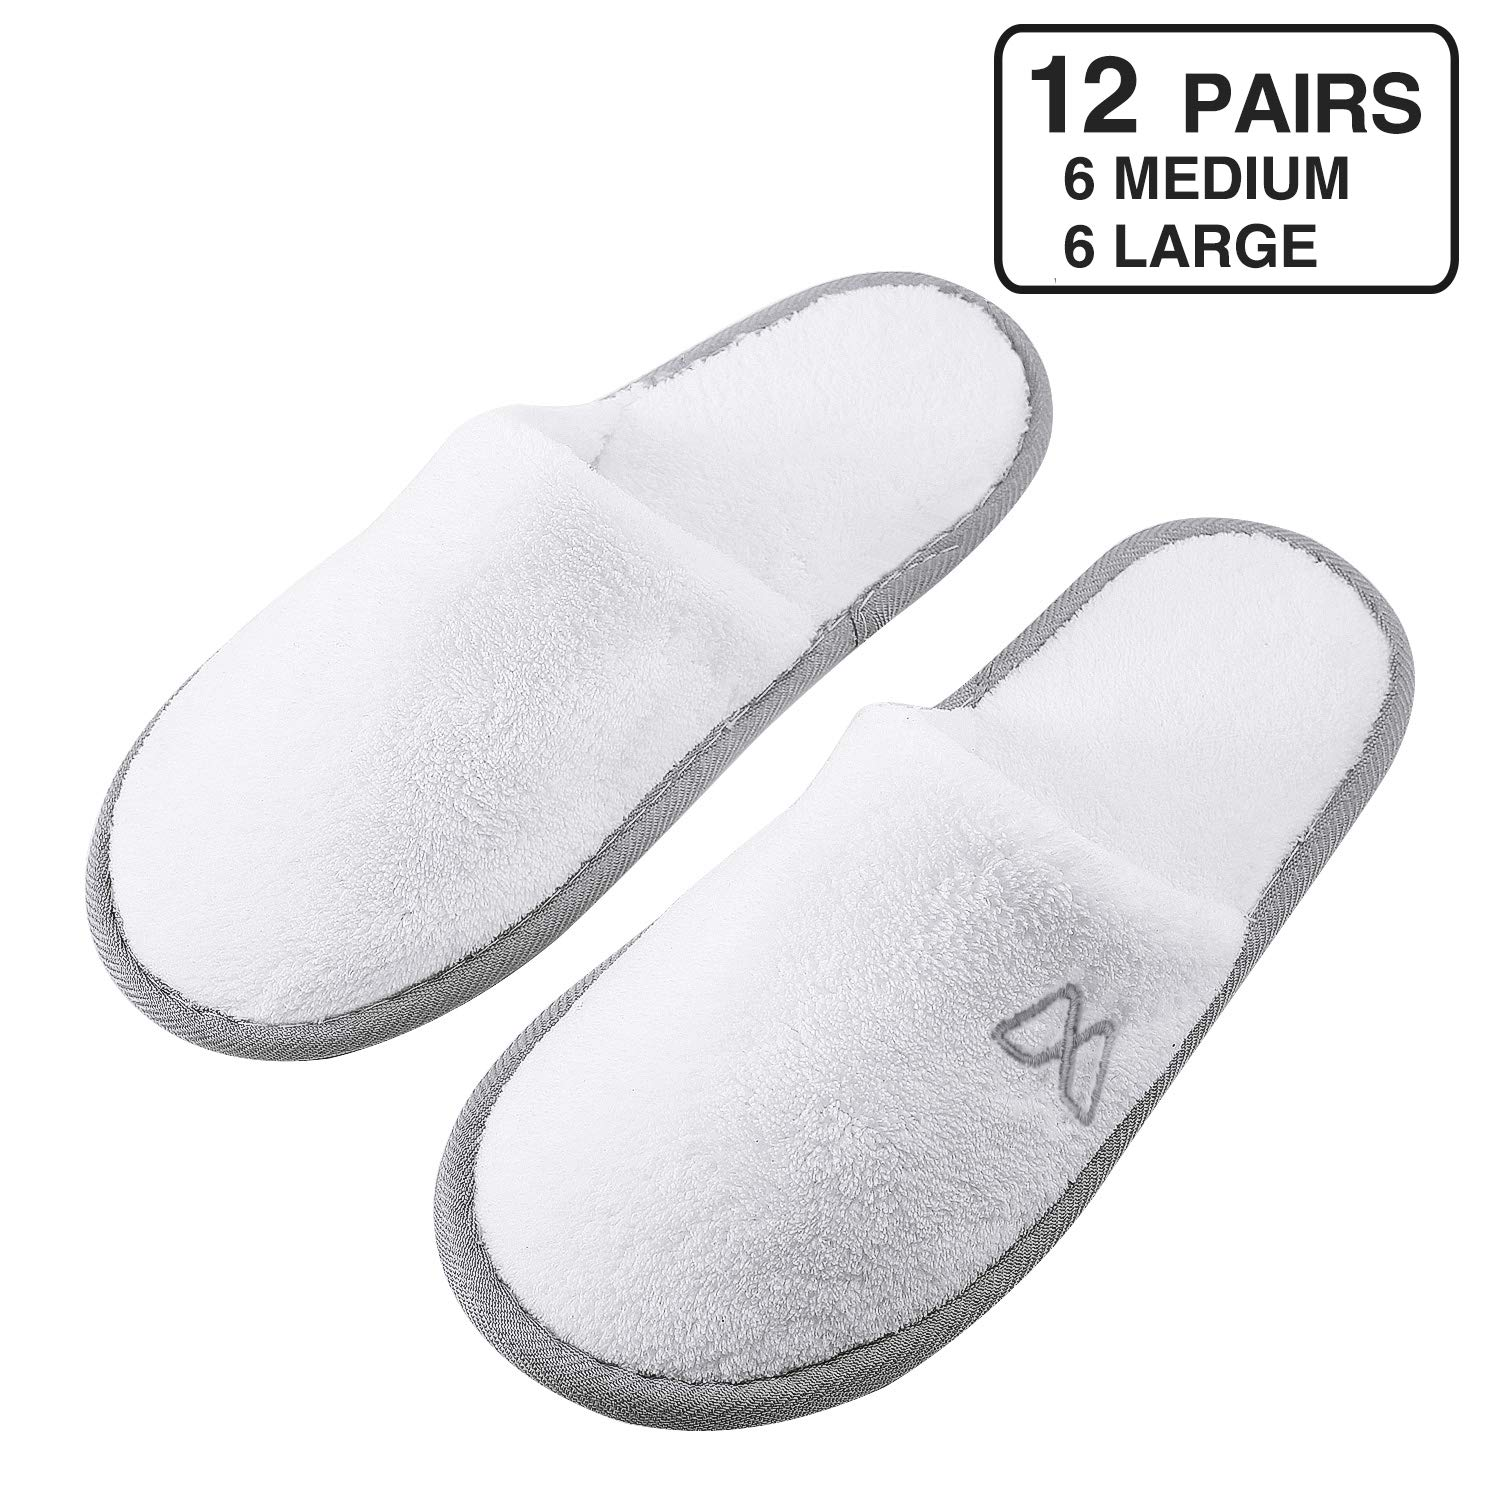 Foorame Spa Slippers, Closed Toe (12 Pairs- 6L, 6M) Disposable Indoor Hotel Slippers for Men and Women, Fluffy Coral Fleece, Deluxe Padded Sole for Extra Comfort- Perfect for Guests, Travel Wedding